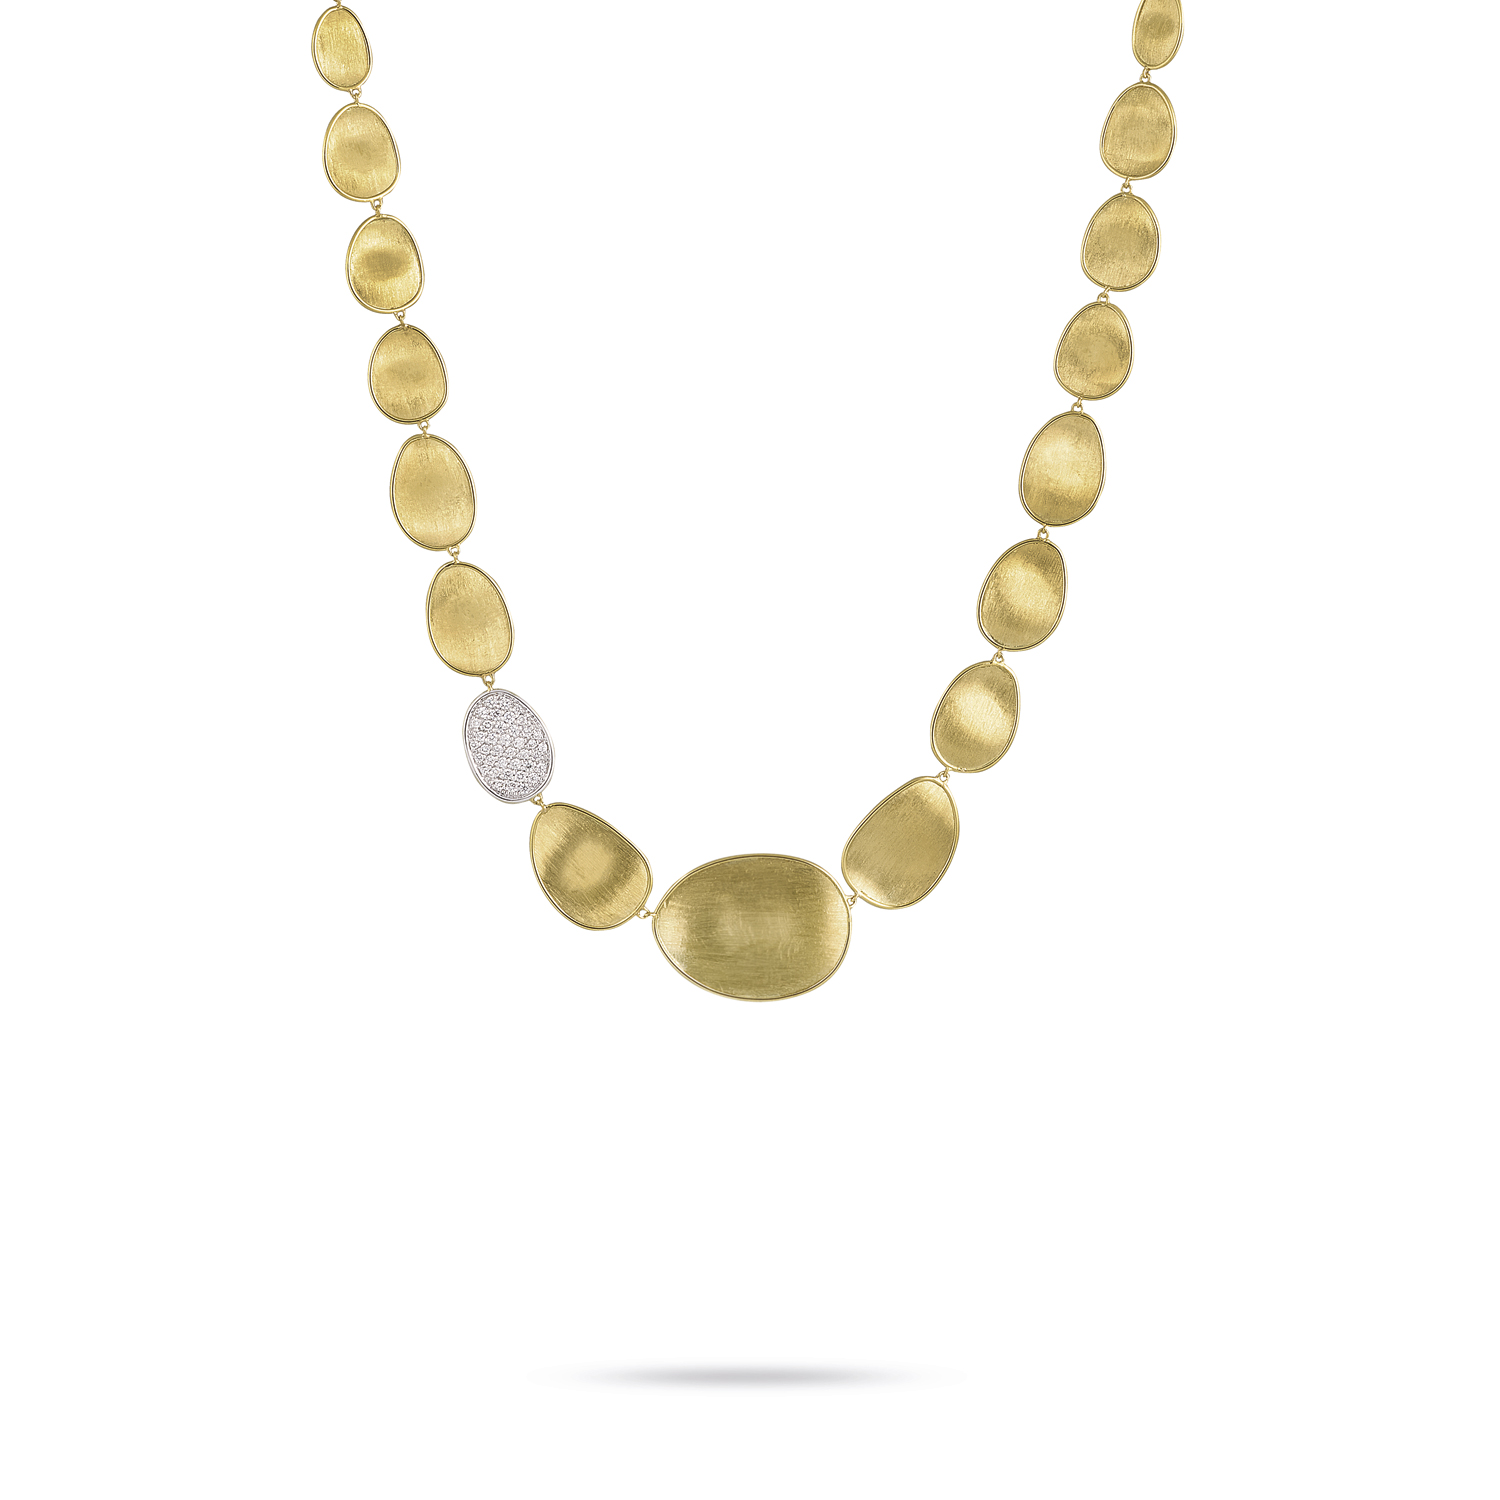 marco bicego lunaria yellow gold and pave' diamond necklace